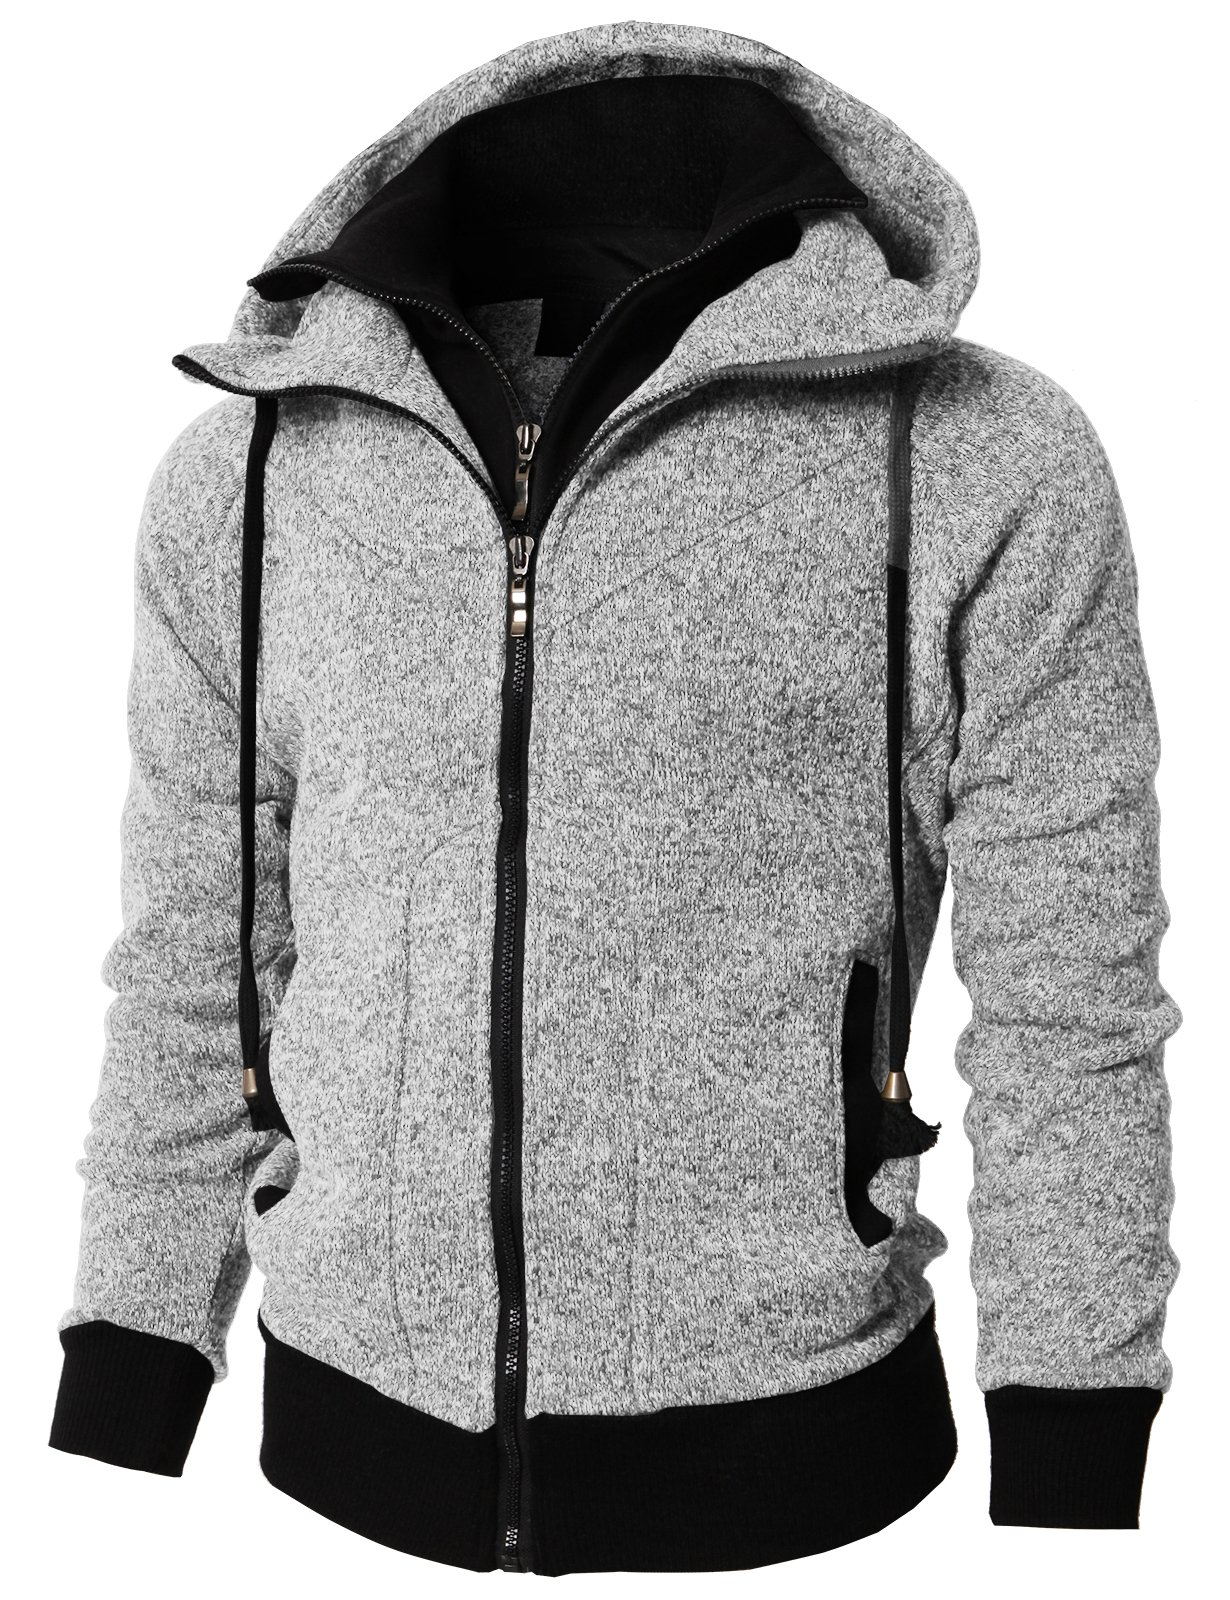 H2H Mens Active Casual Fleece Lining Double Zip Pullover Hoodie Jacket Gray US L/Asia XL (KMOHOL0128)